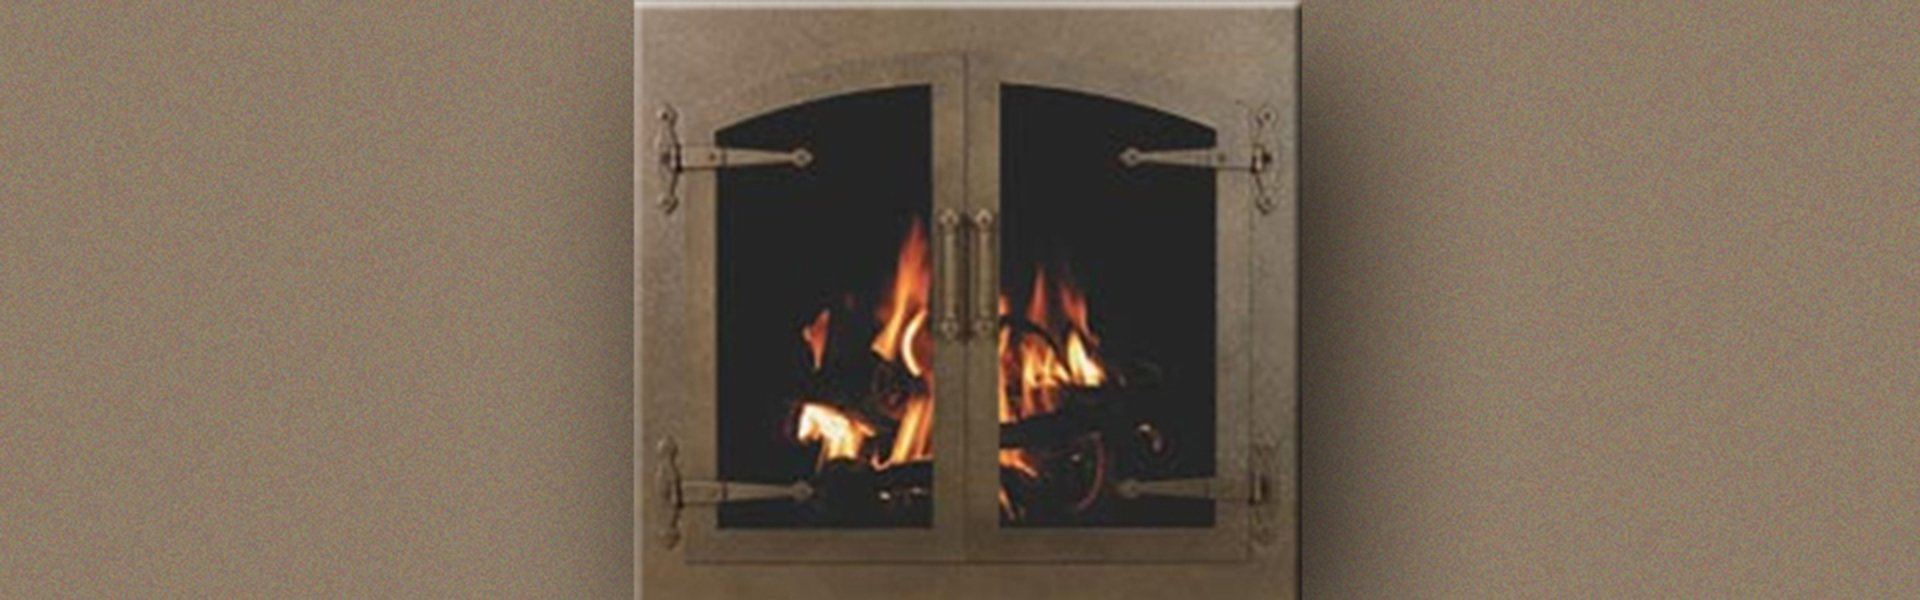 Fireplace Repair Nashville Tn Fireplace Repair Fireplace Repair Company